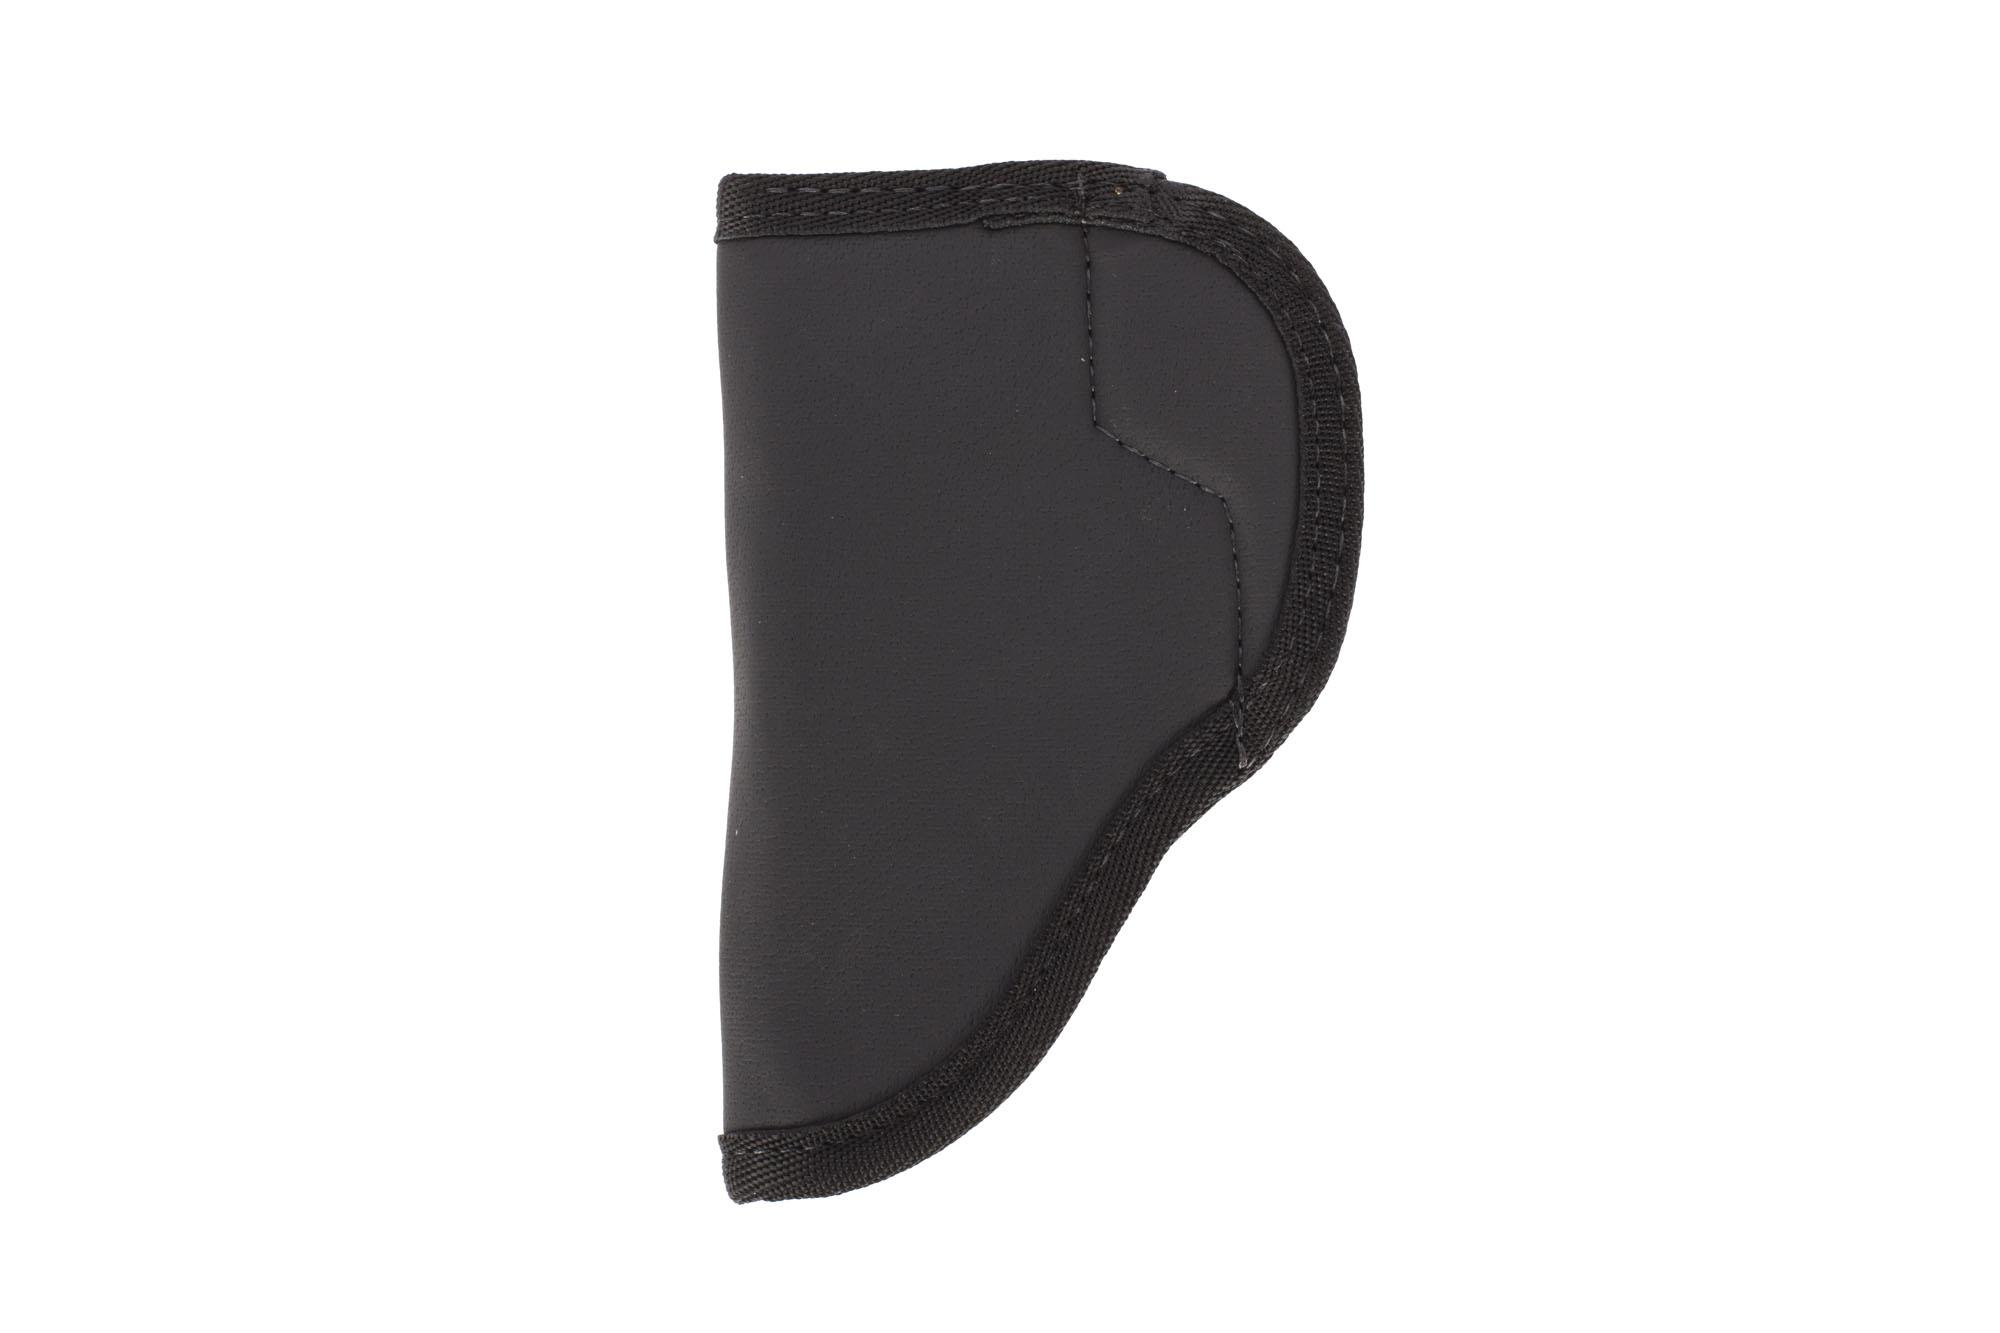 Sticky Holsters LG-2 Large Sticky Holster - GLOCK 19/23 - Black